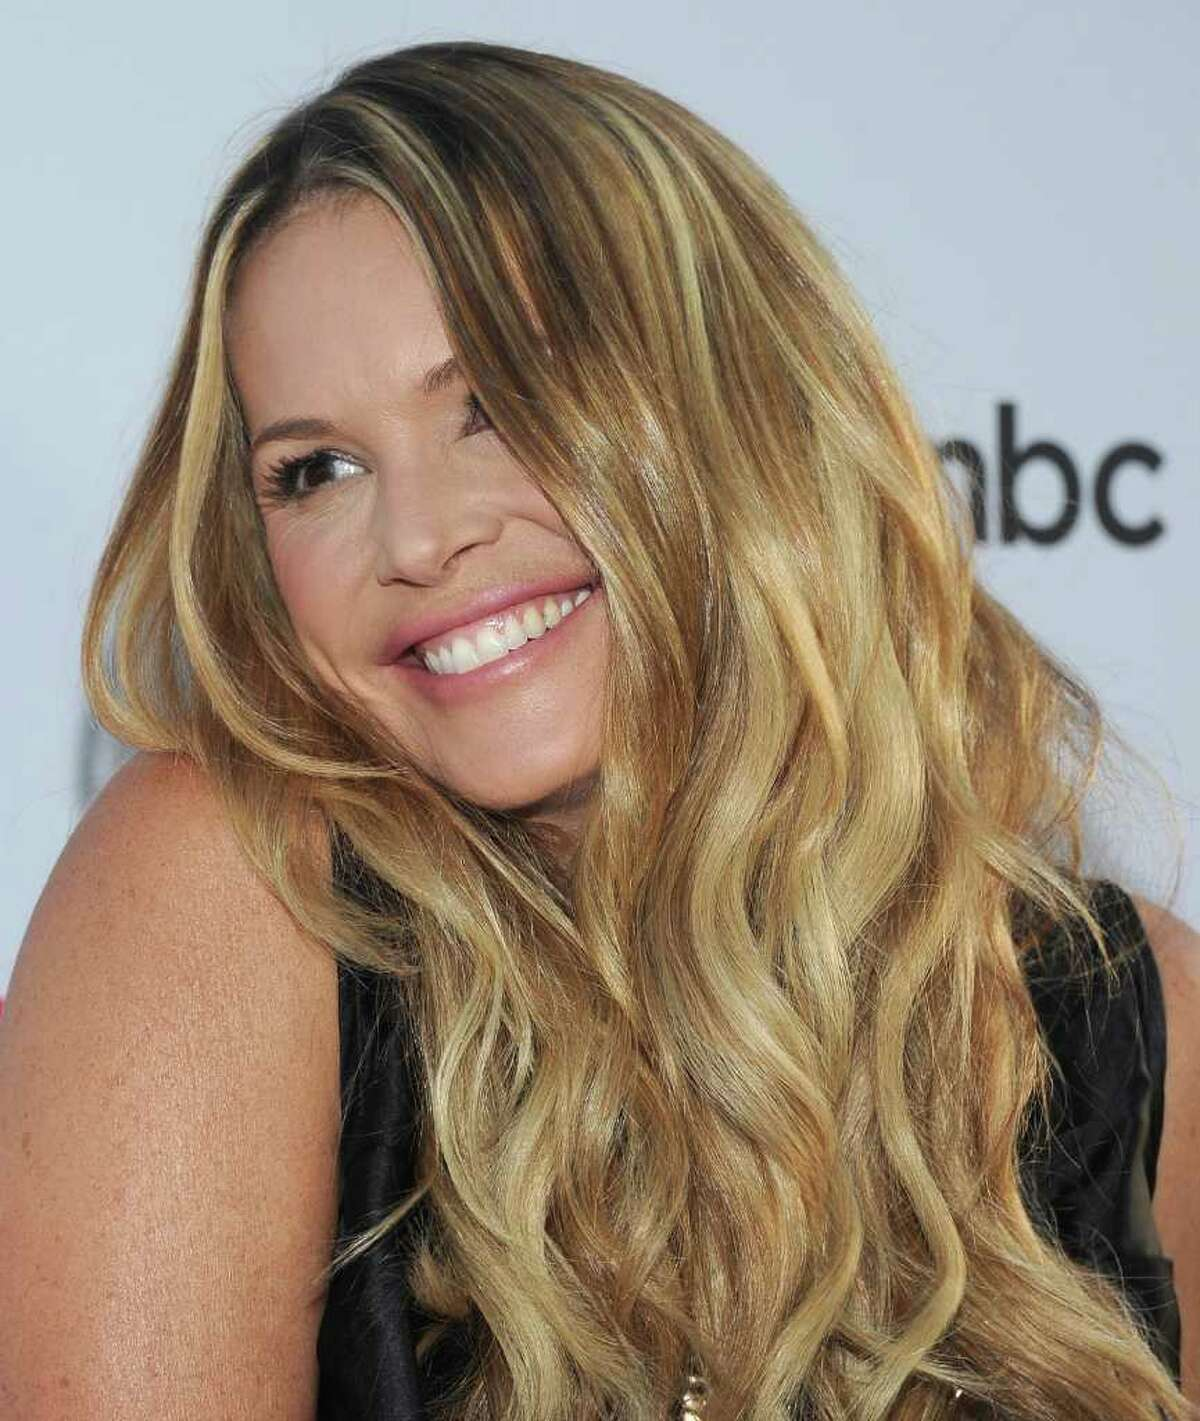 Actress Elle MacPherson arrives at the NBC Universal TCA 2011 Press Tour All-Star Party at the SLS Hotel in Los Angeles, California.